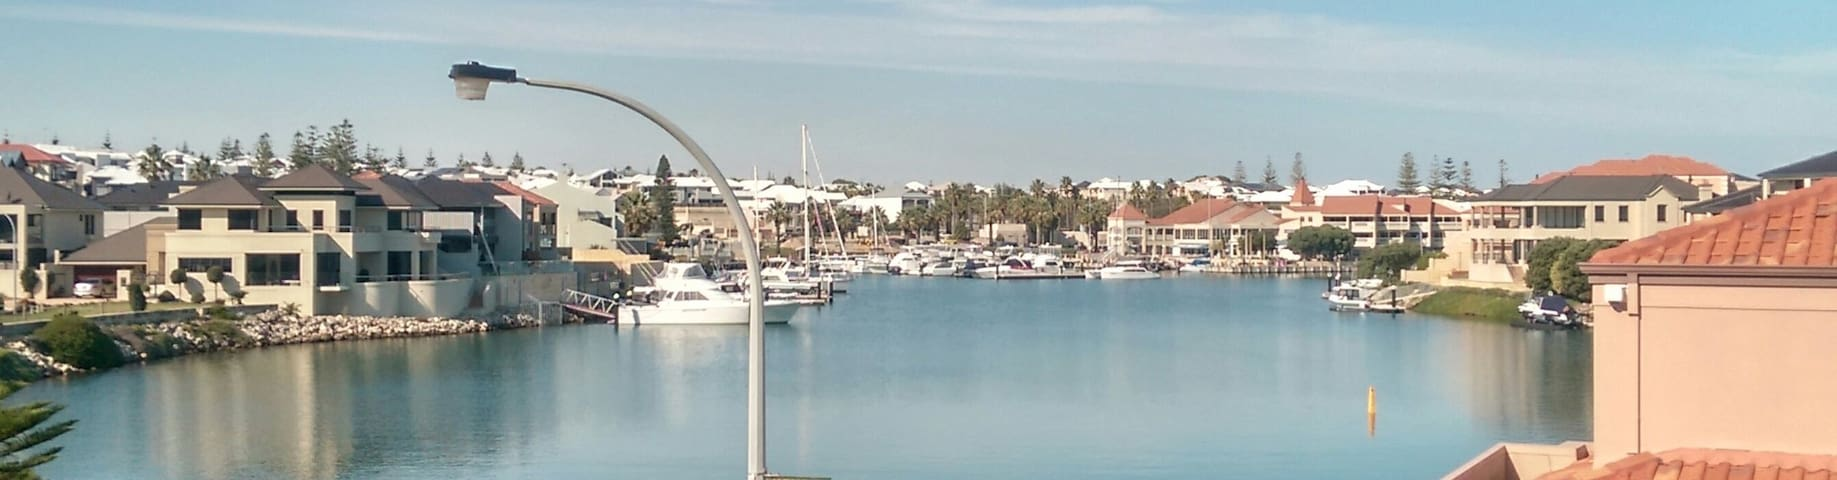 Amazing Waterfront View & Lifestyle - Mindarie